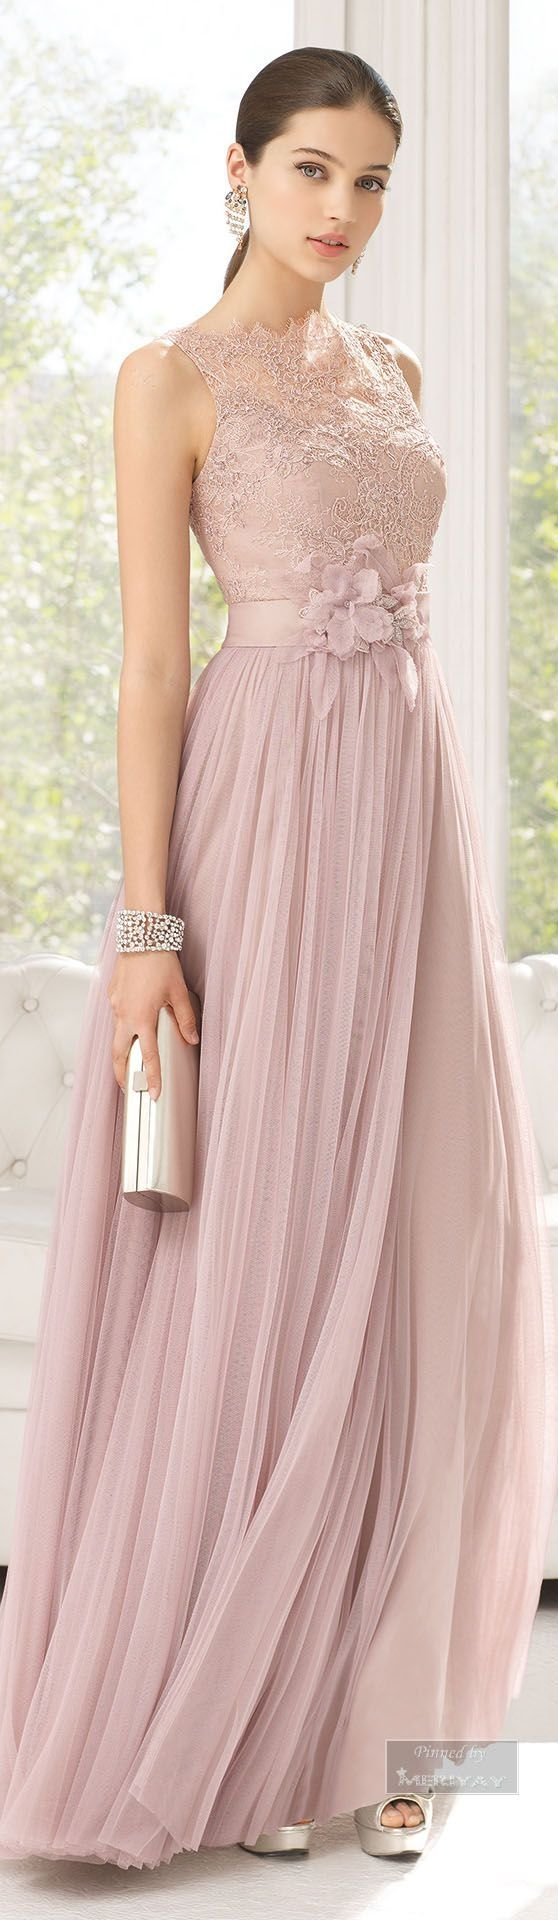 Best type of dress to wear to a wedding  The  best images about De purtat on Pinterest